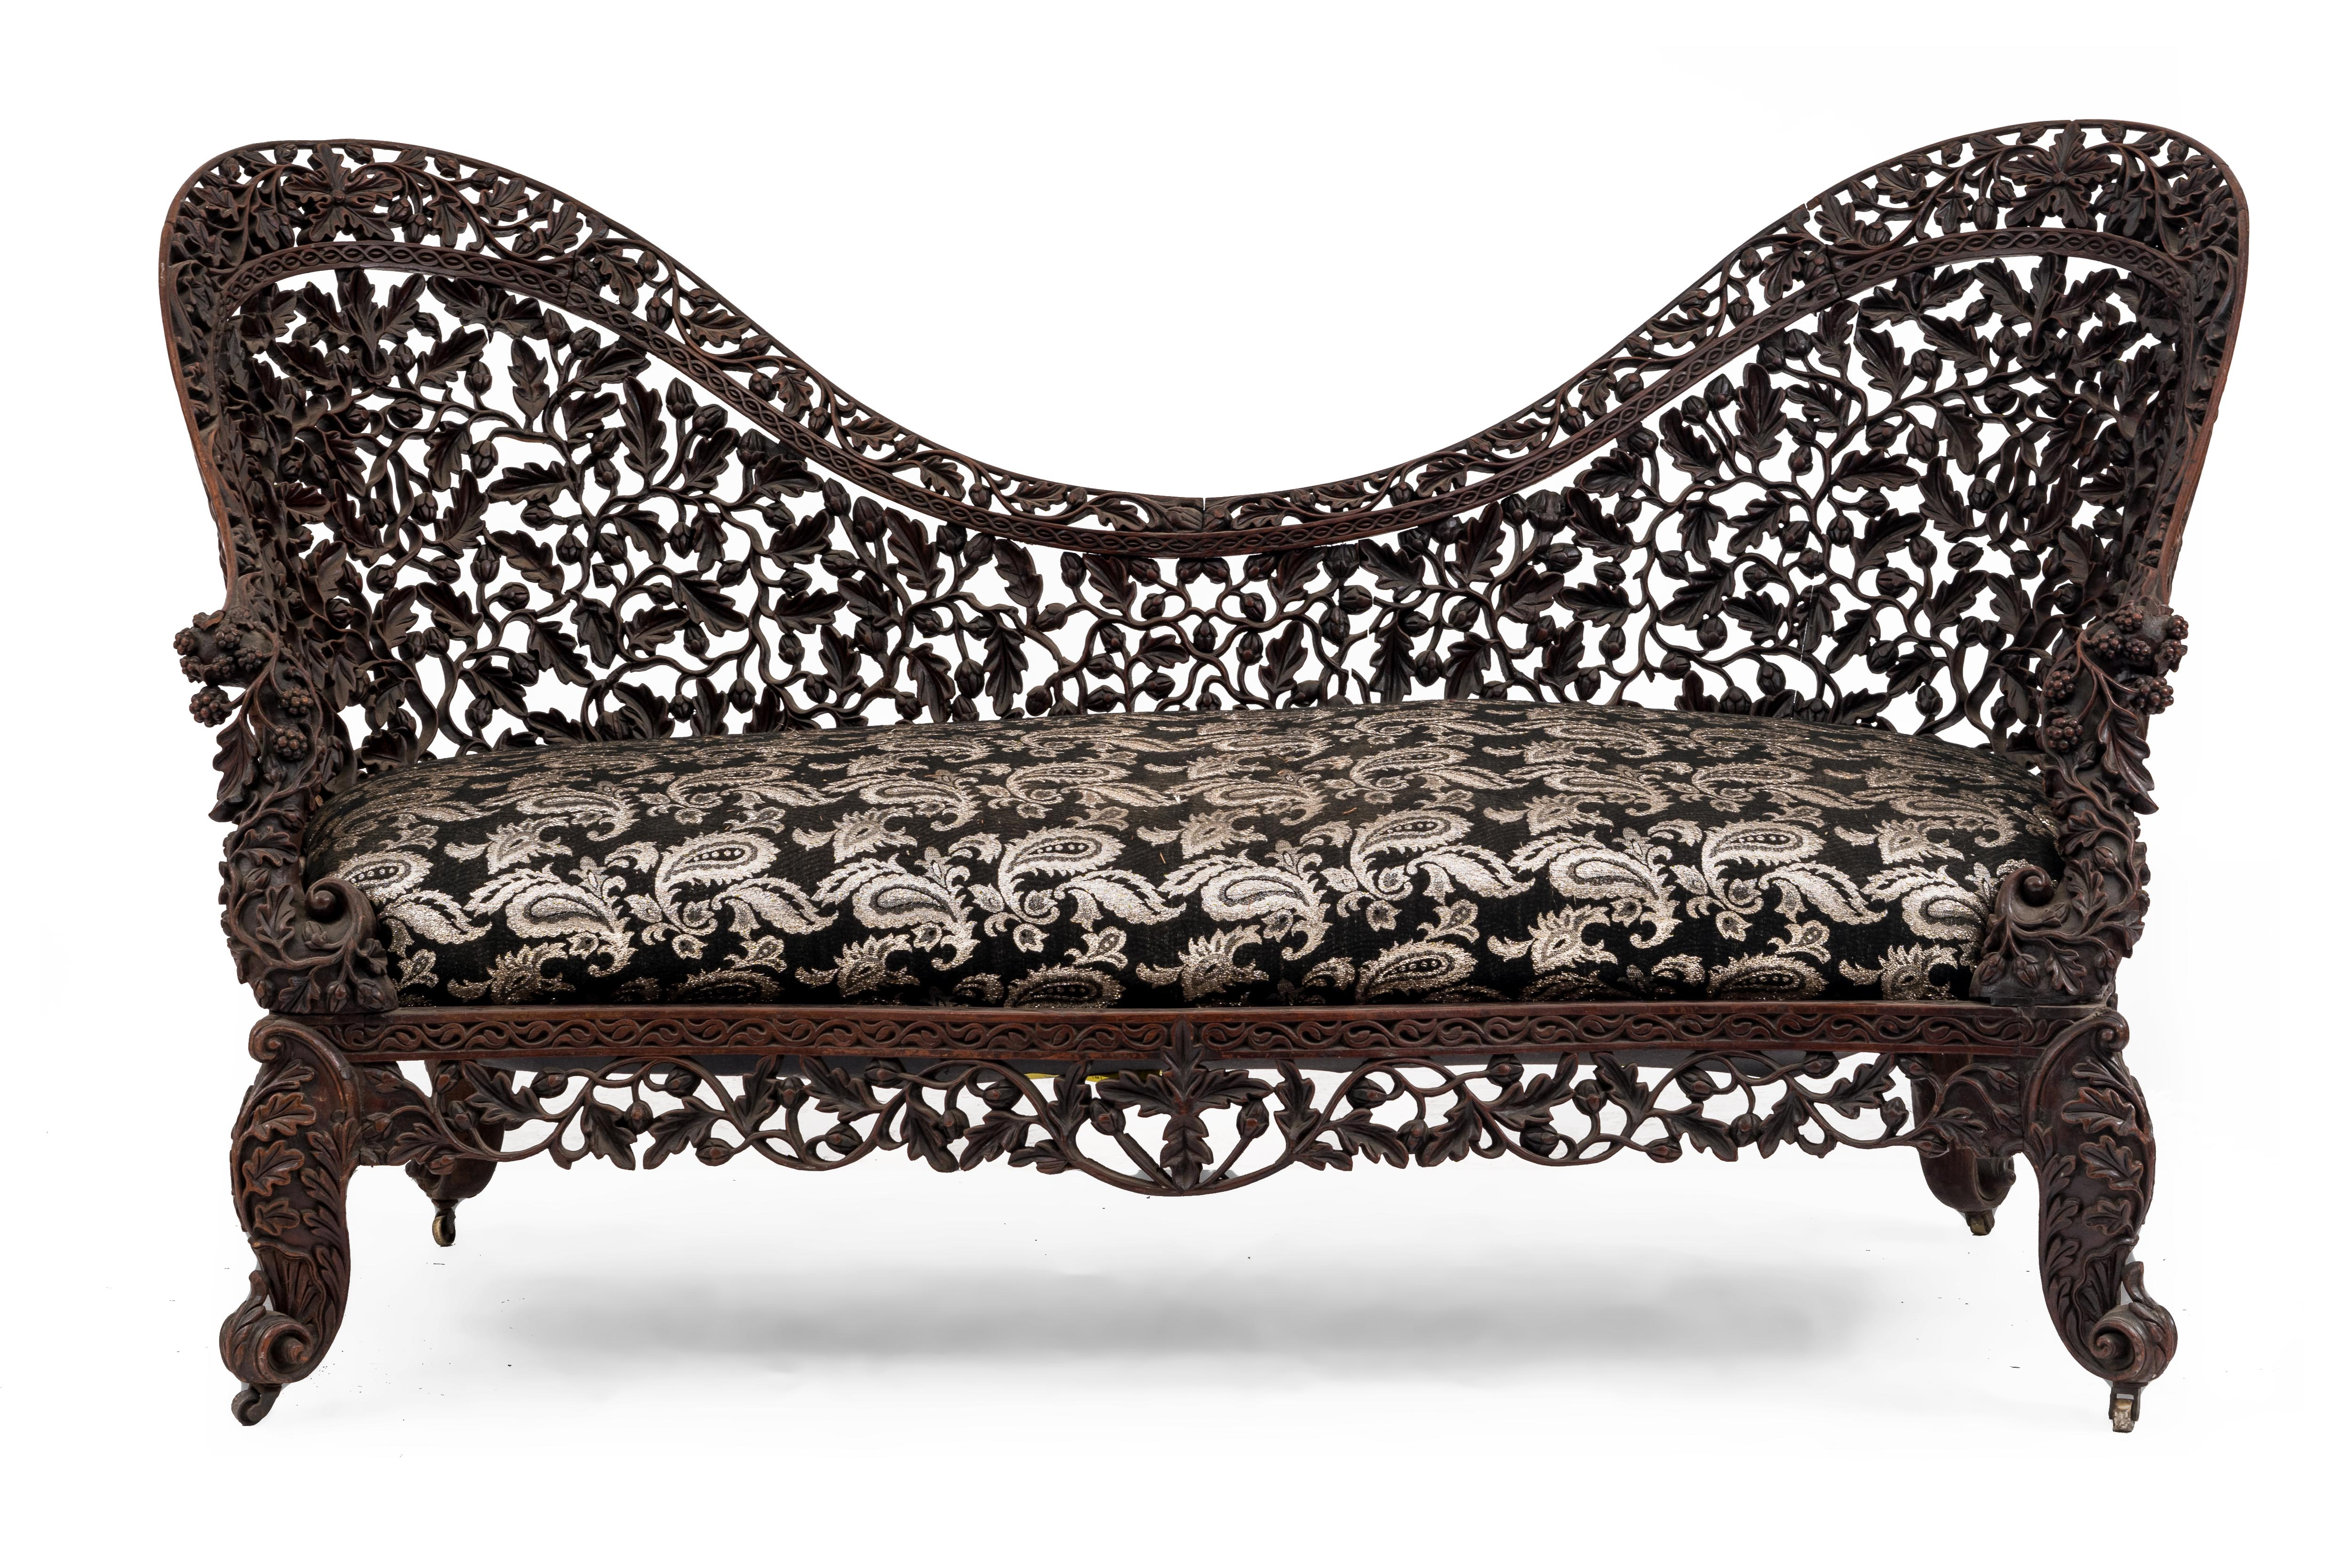 Admirable Asian Burmese Carved Rosewood Settee Newel Gmtry Best Dining Table And Chair Ideas Images Gmtryco